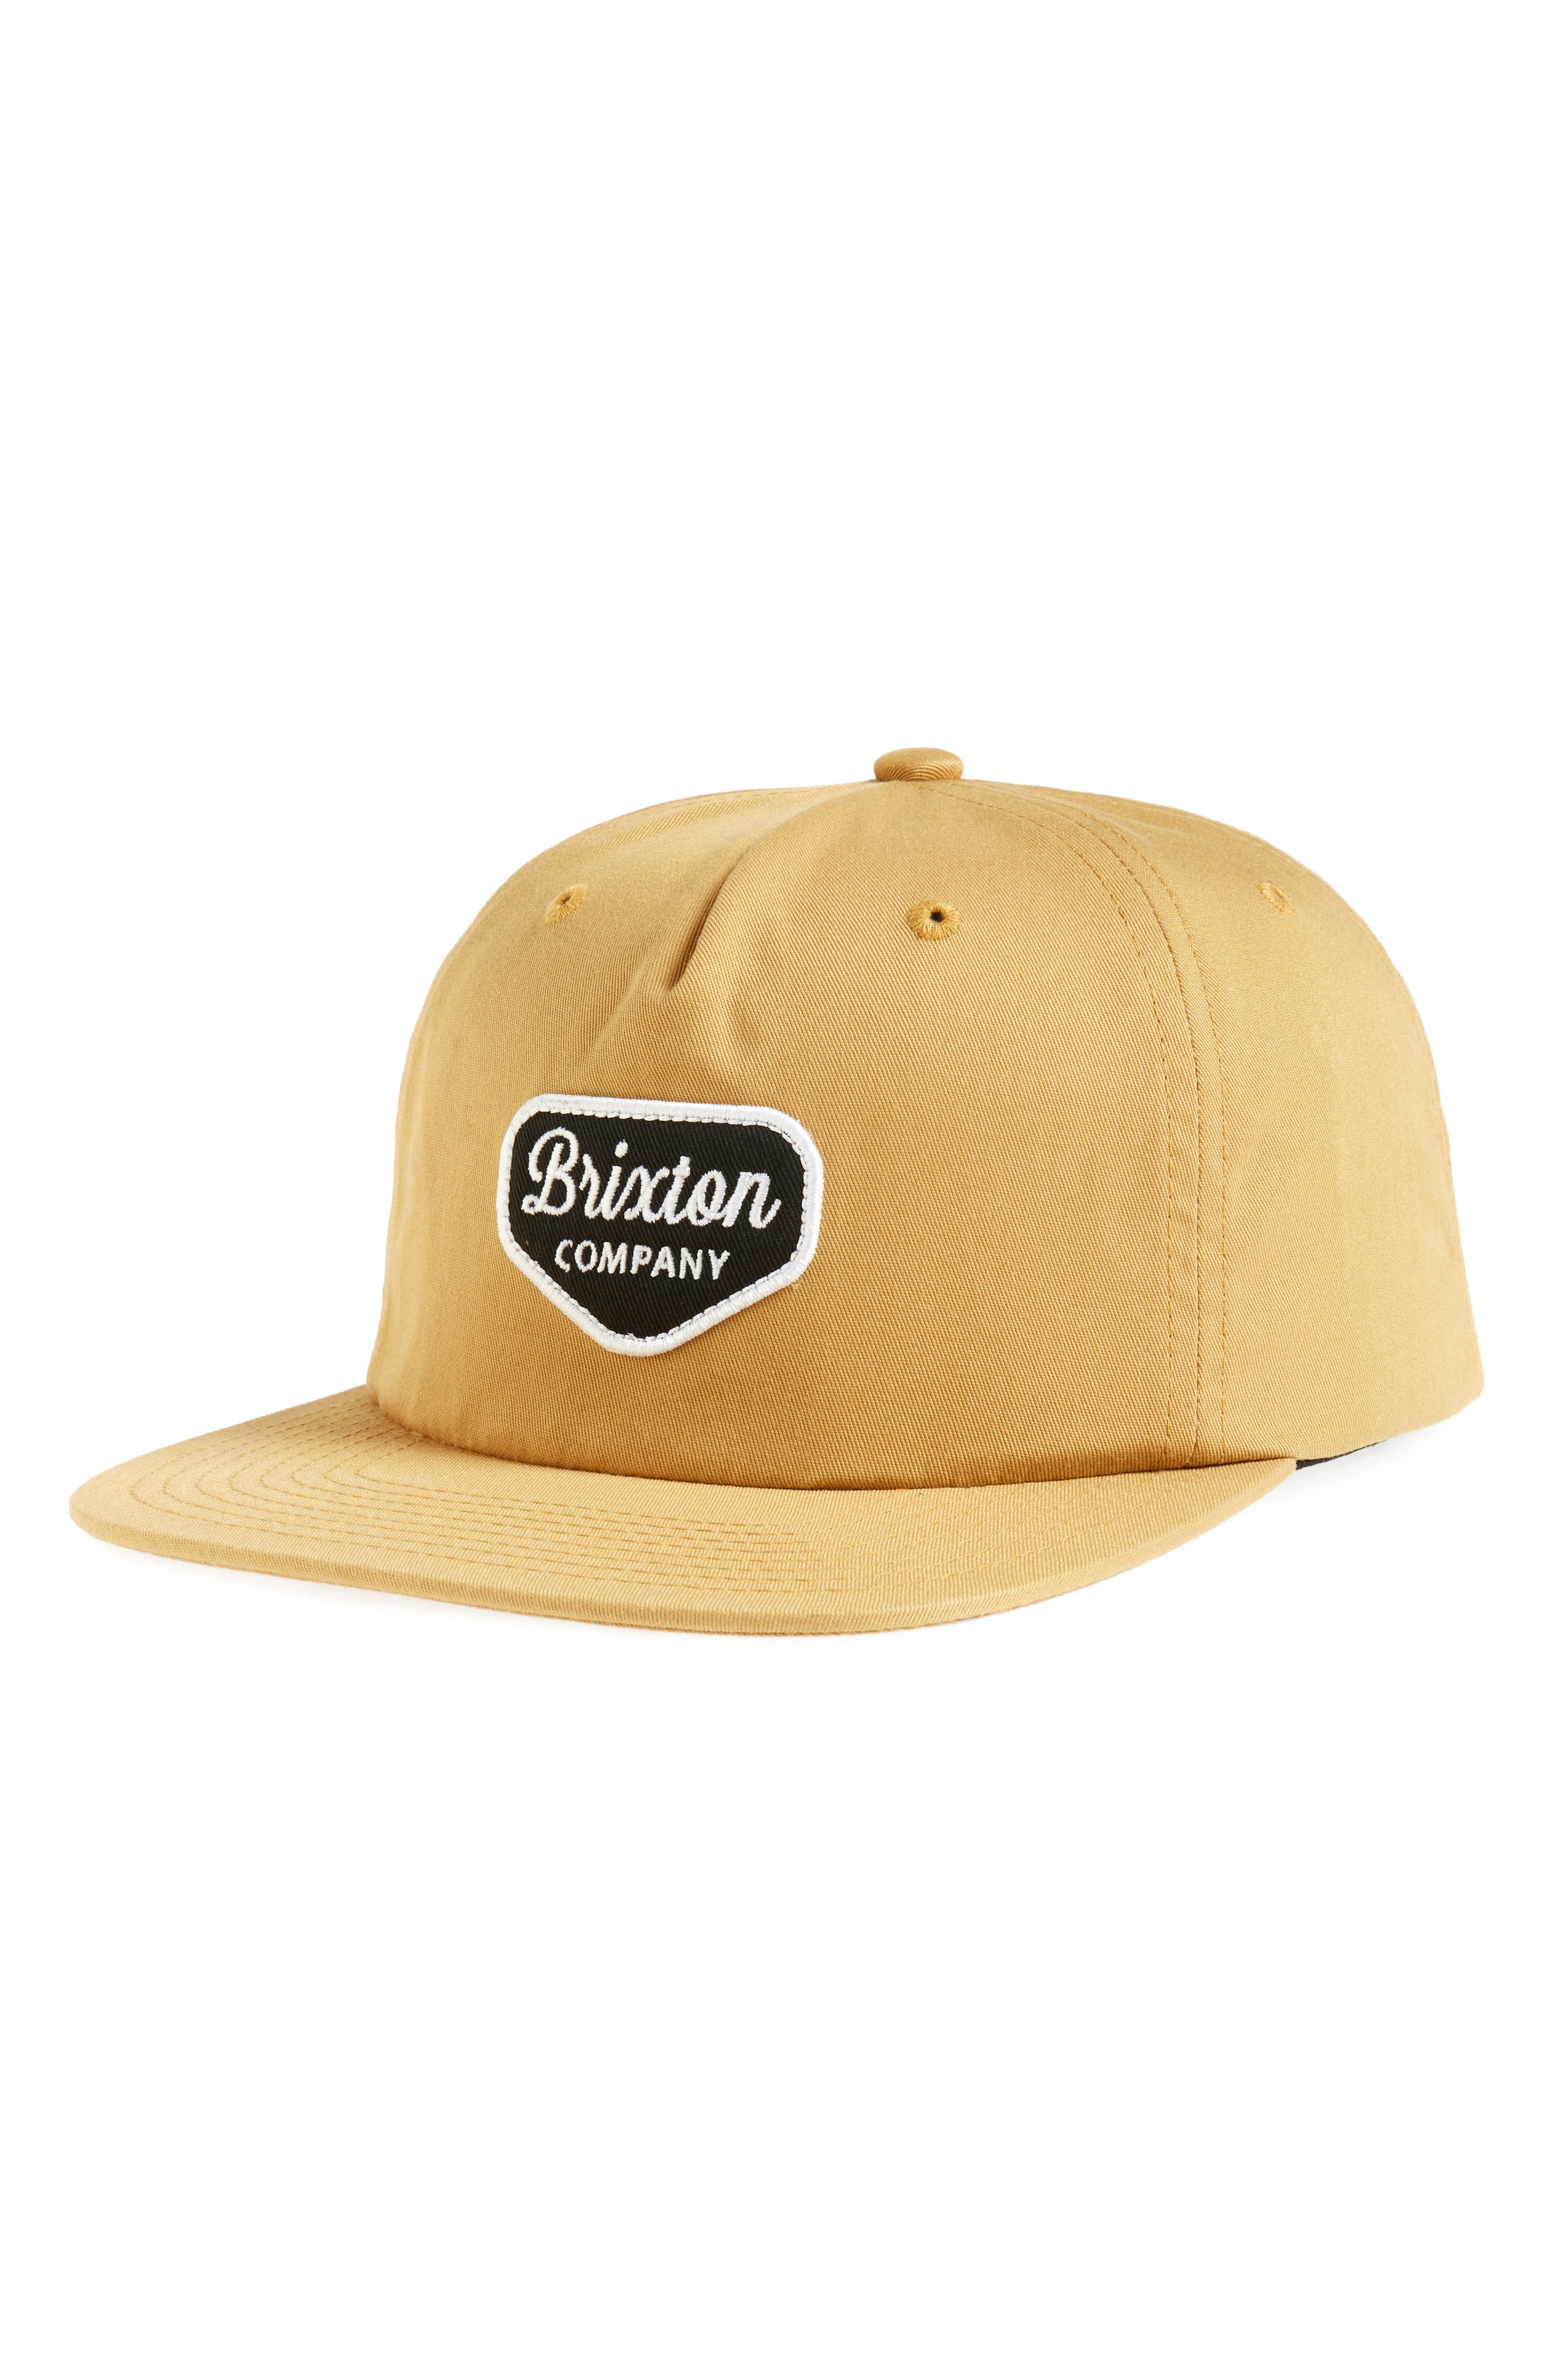 Navato Snapback Cap,                         Main,                         color, 200